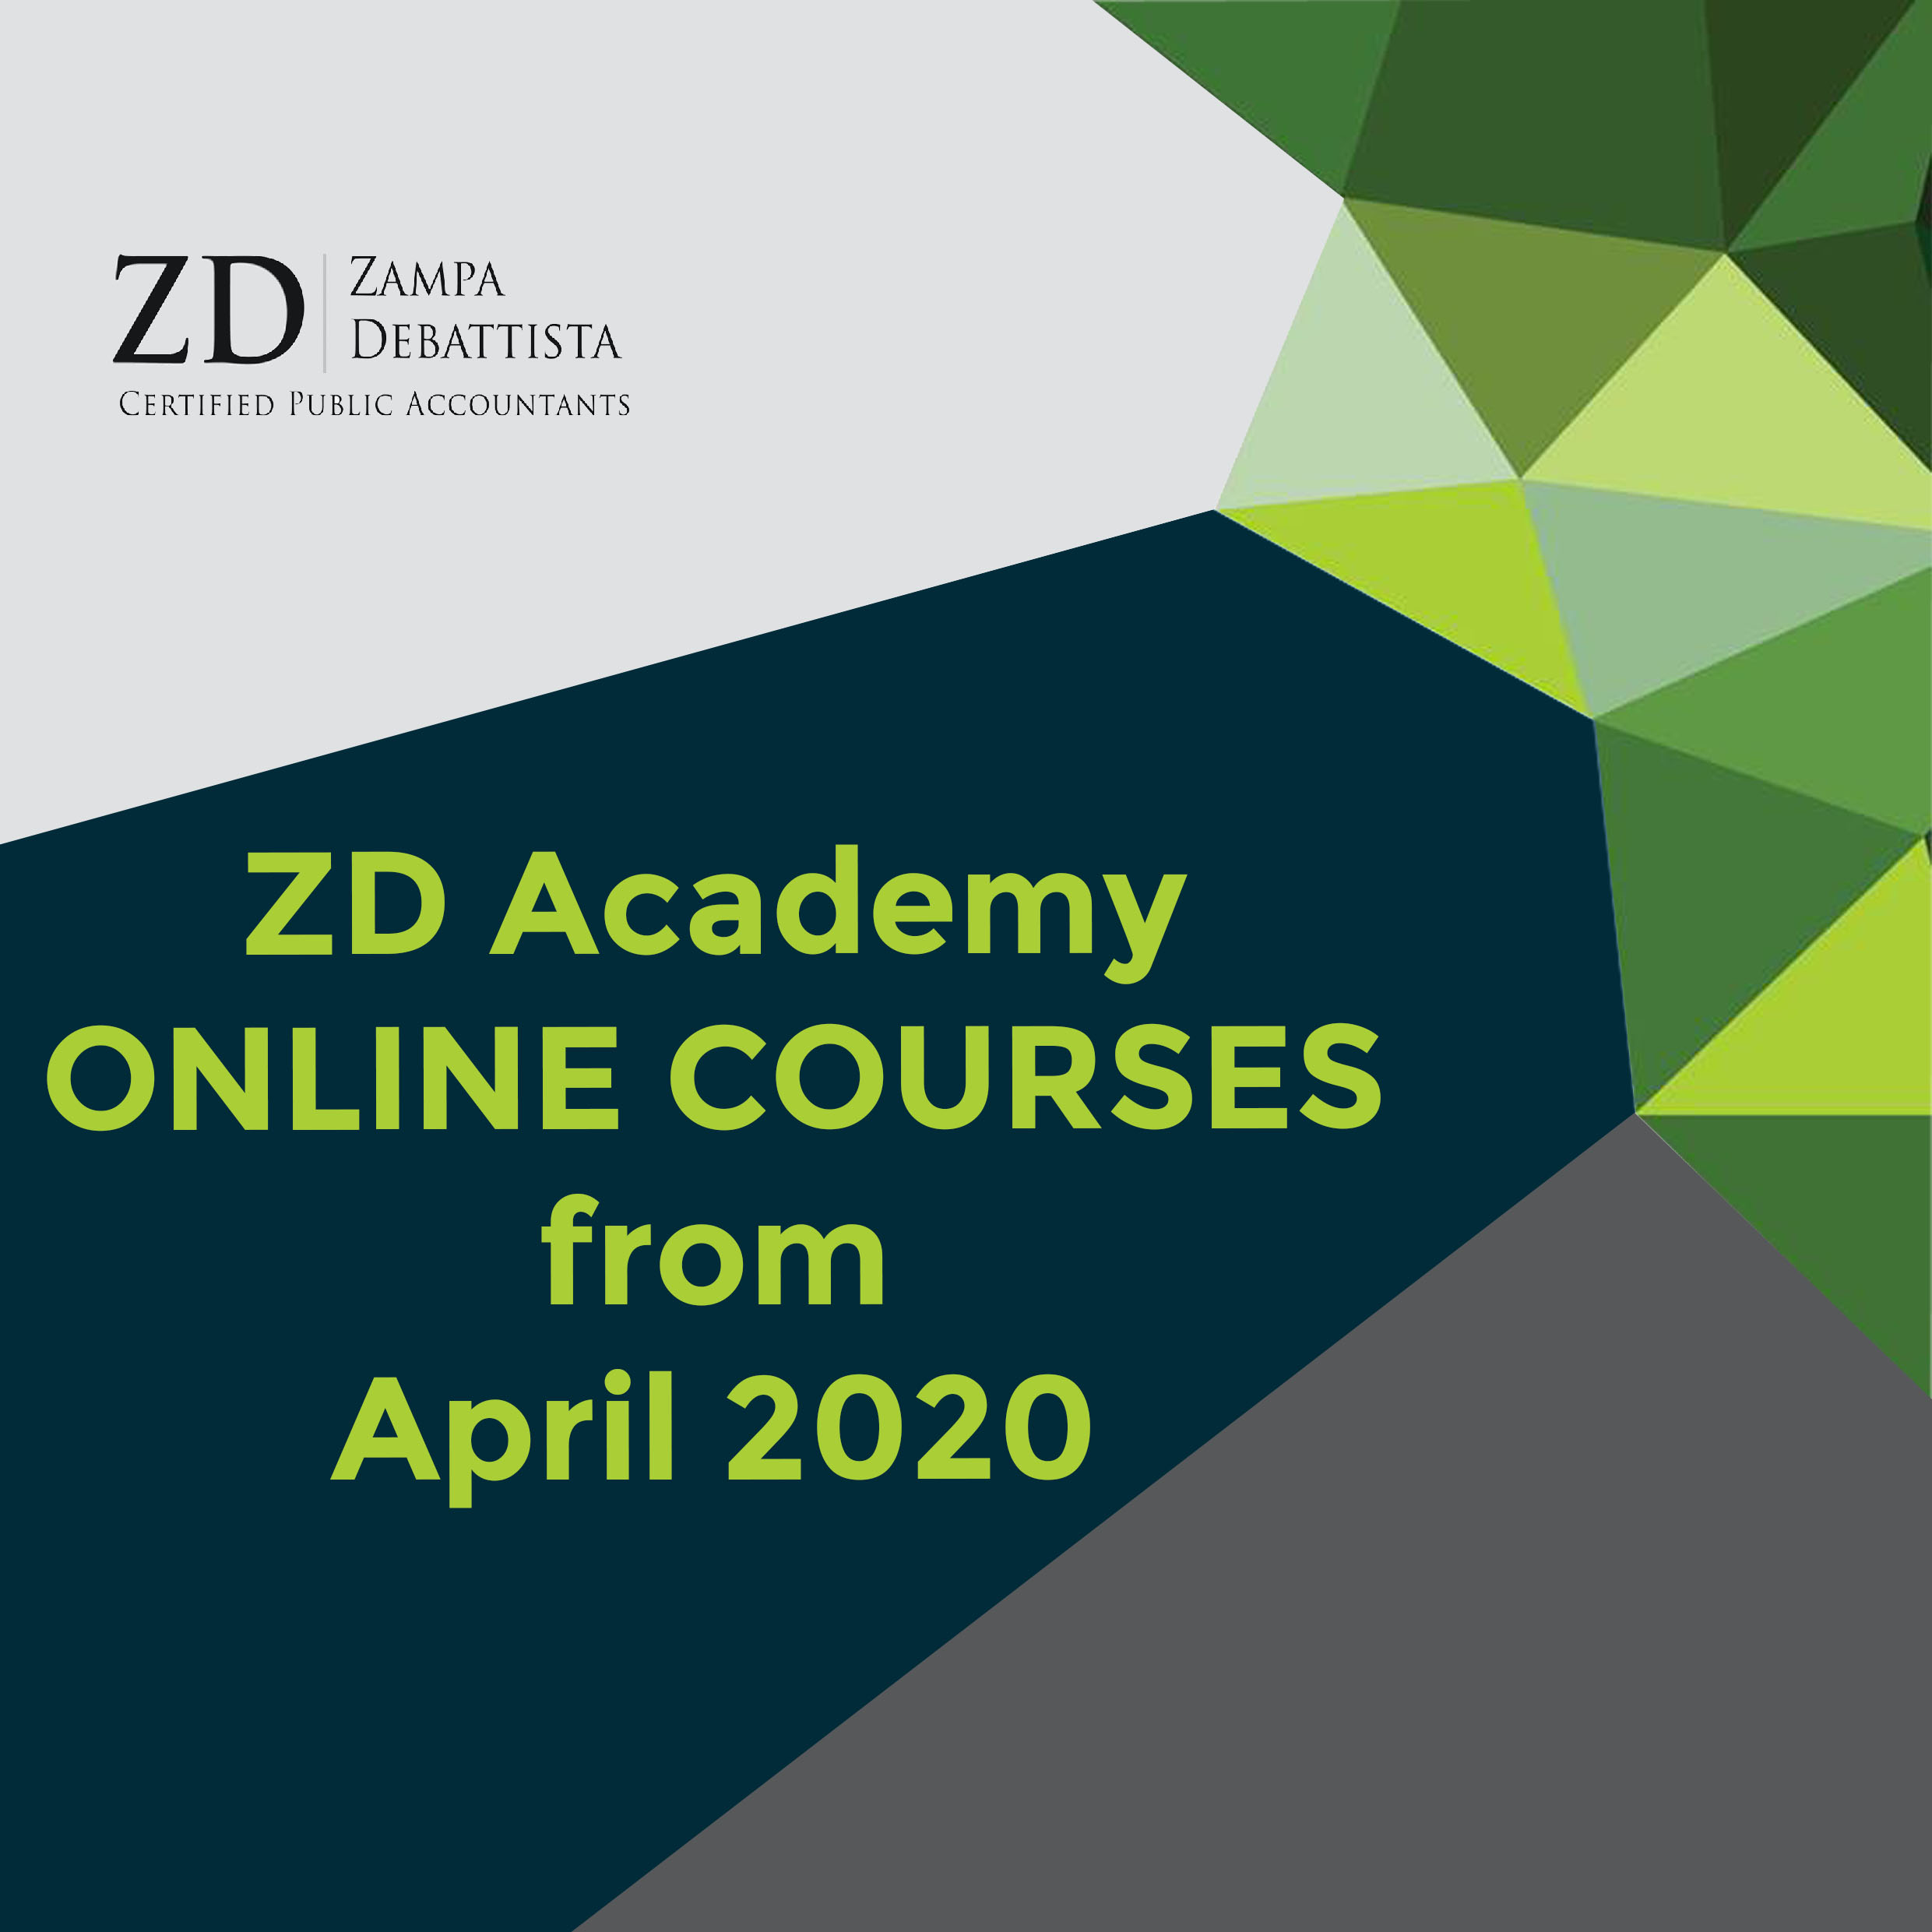 ZD Academy Online Courses from April 2020